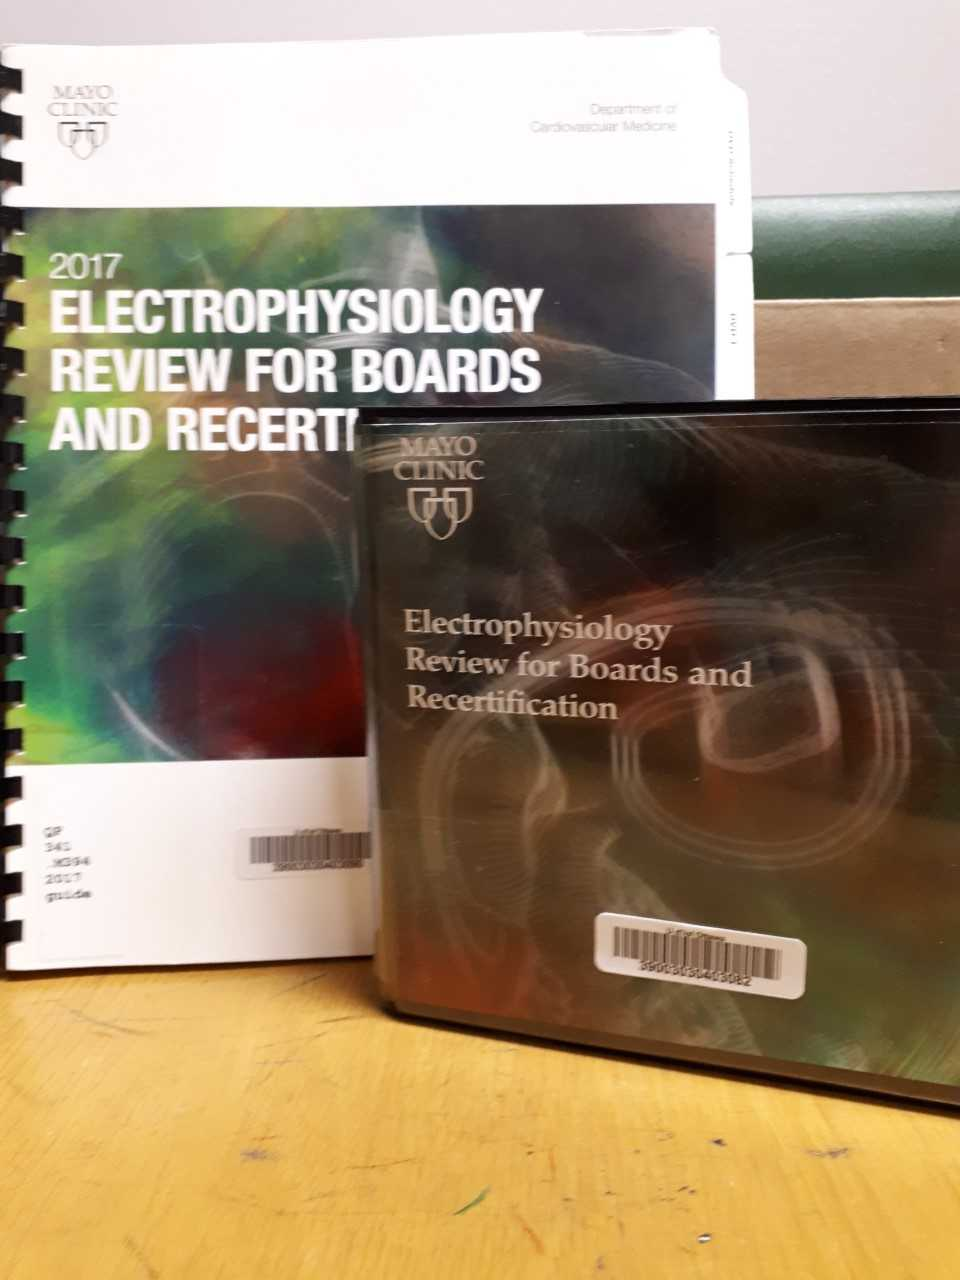 Mayo clinic electrophysiology review for boards and recertification